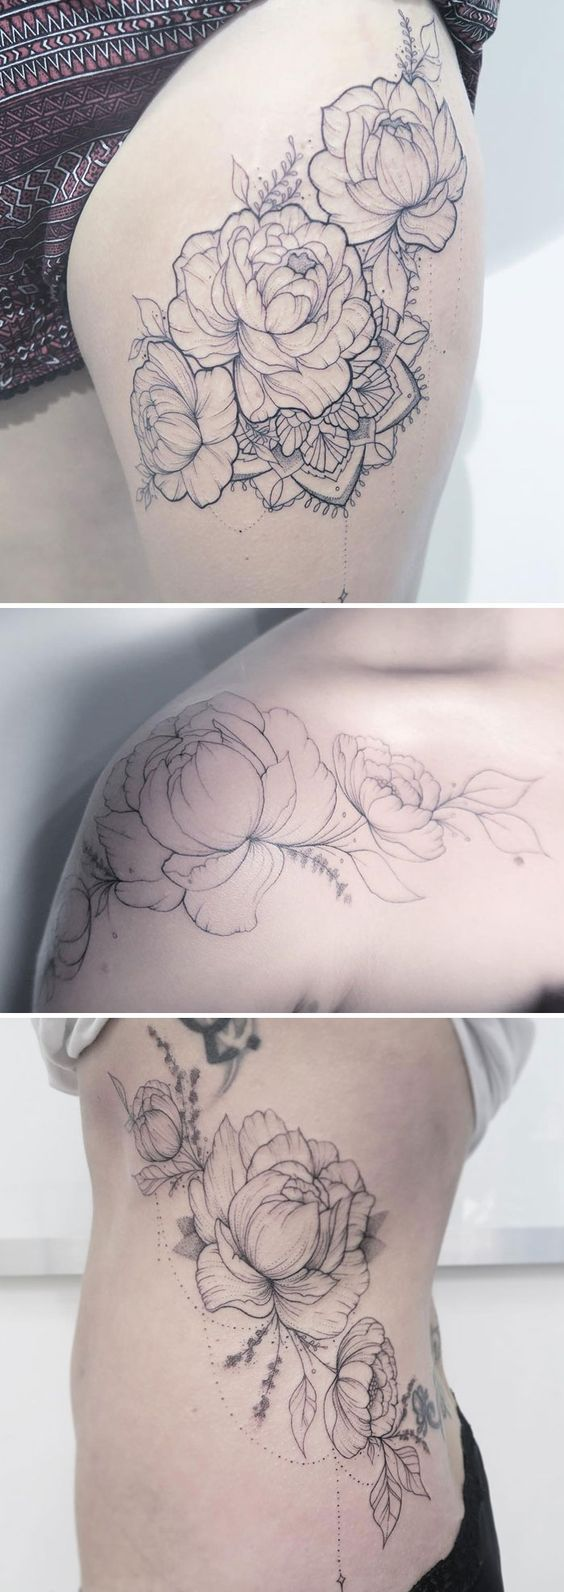 269 best flower tattoos images on pinterest | botany, draw and drawing